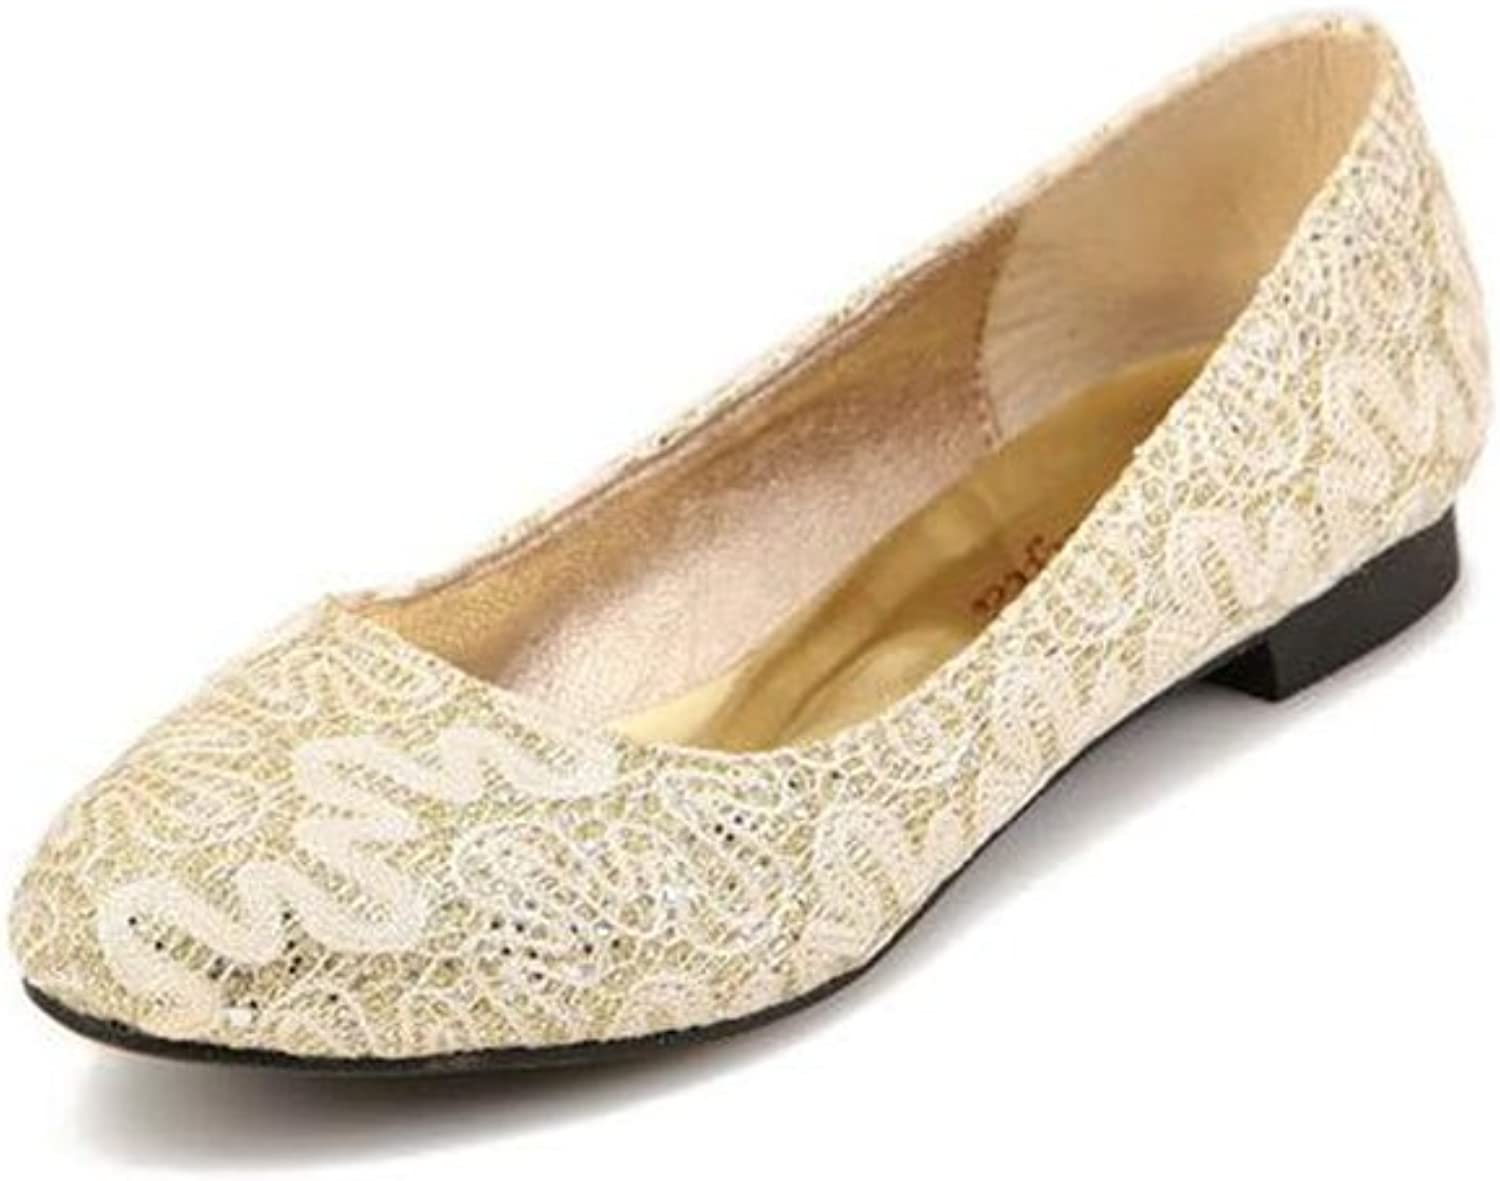 SUNNY Store Women Mary Jane Pumps Closed Toe Mid Heel Lace Wedding Bridal shoes